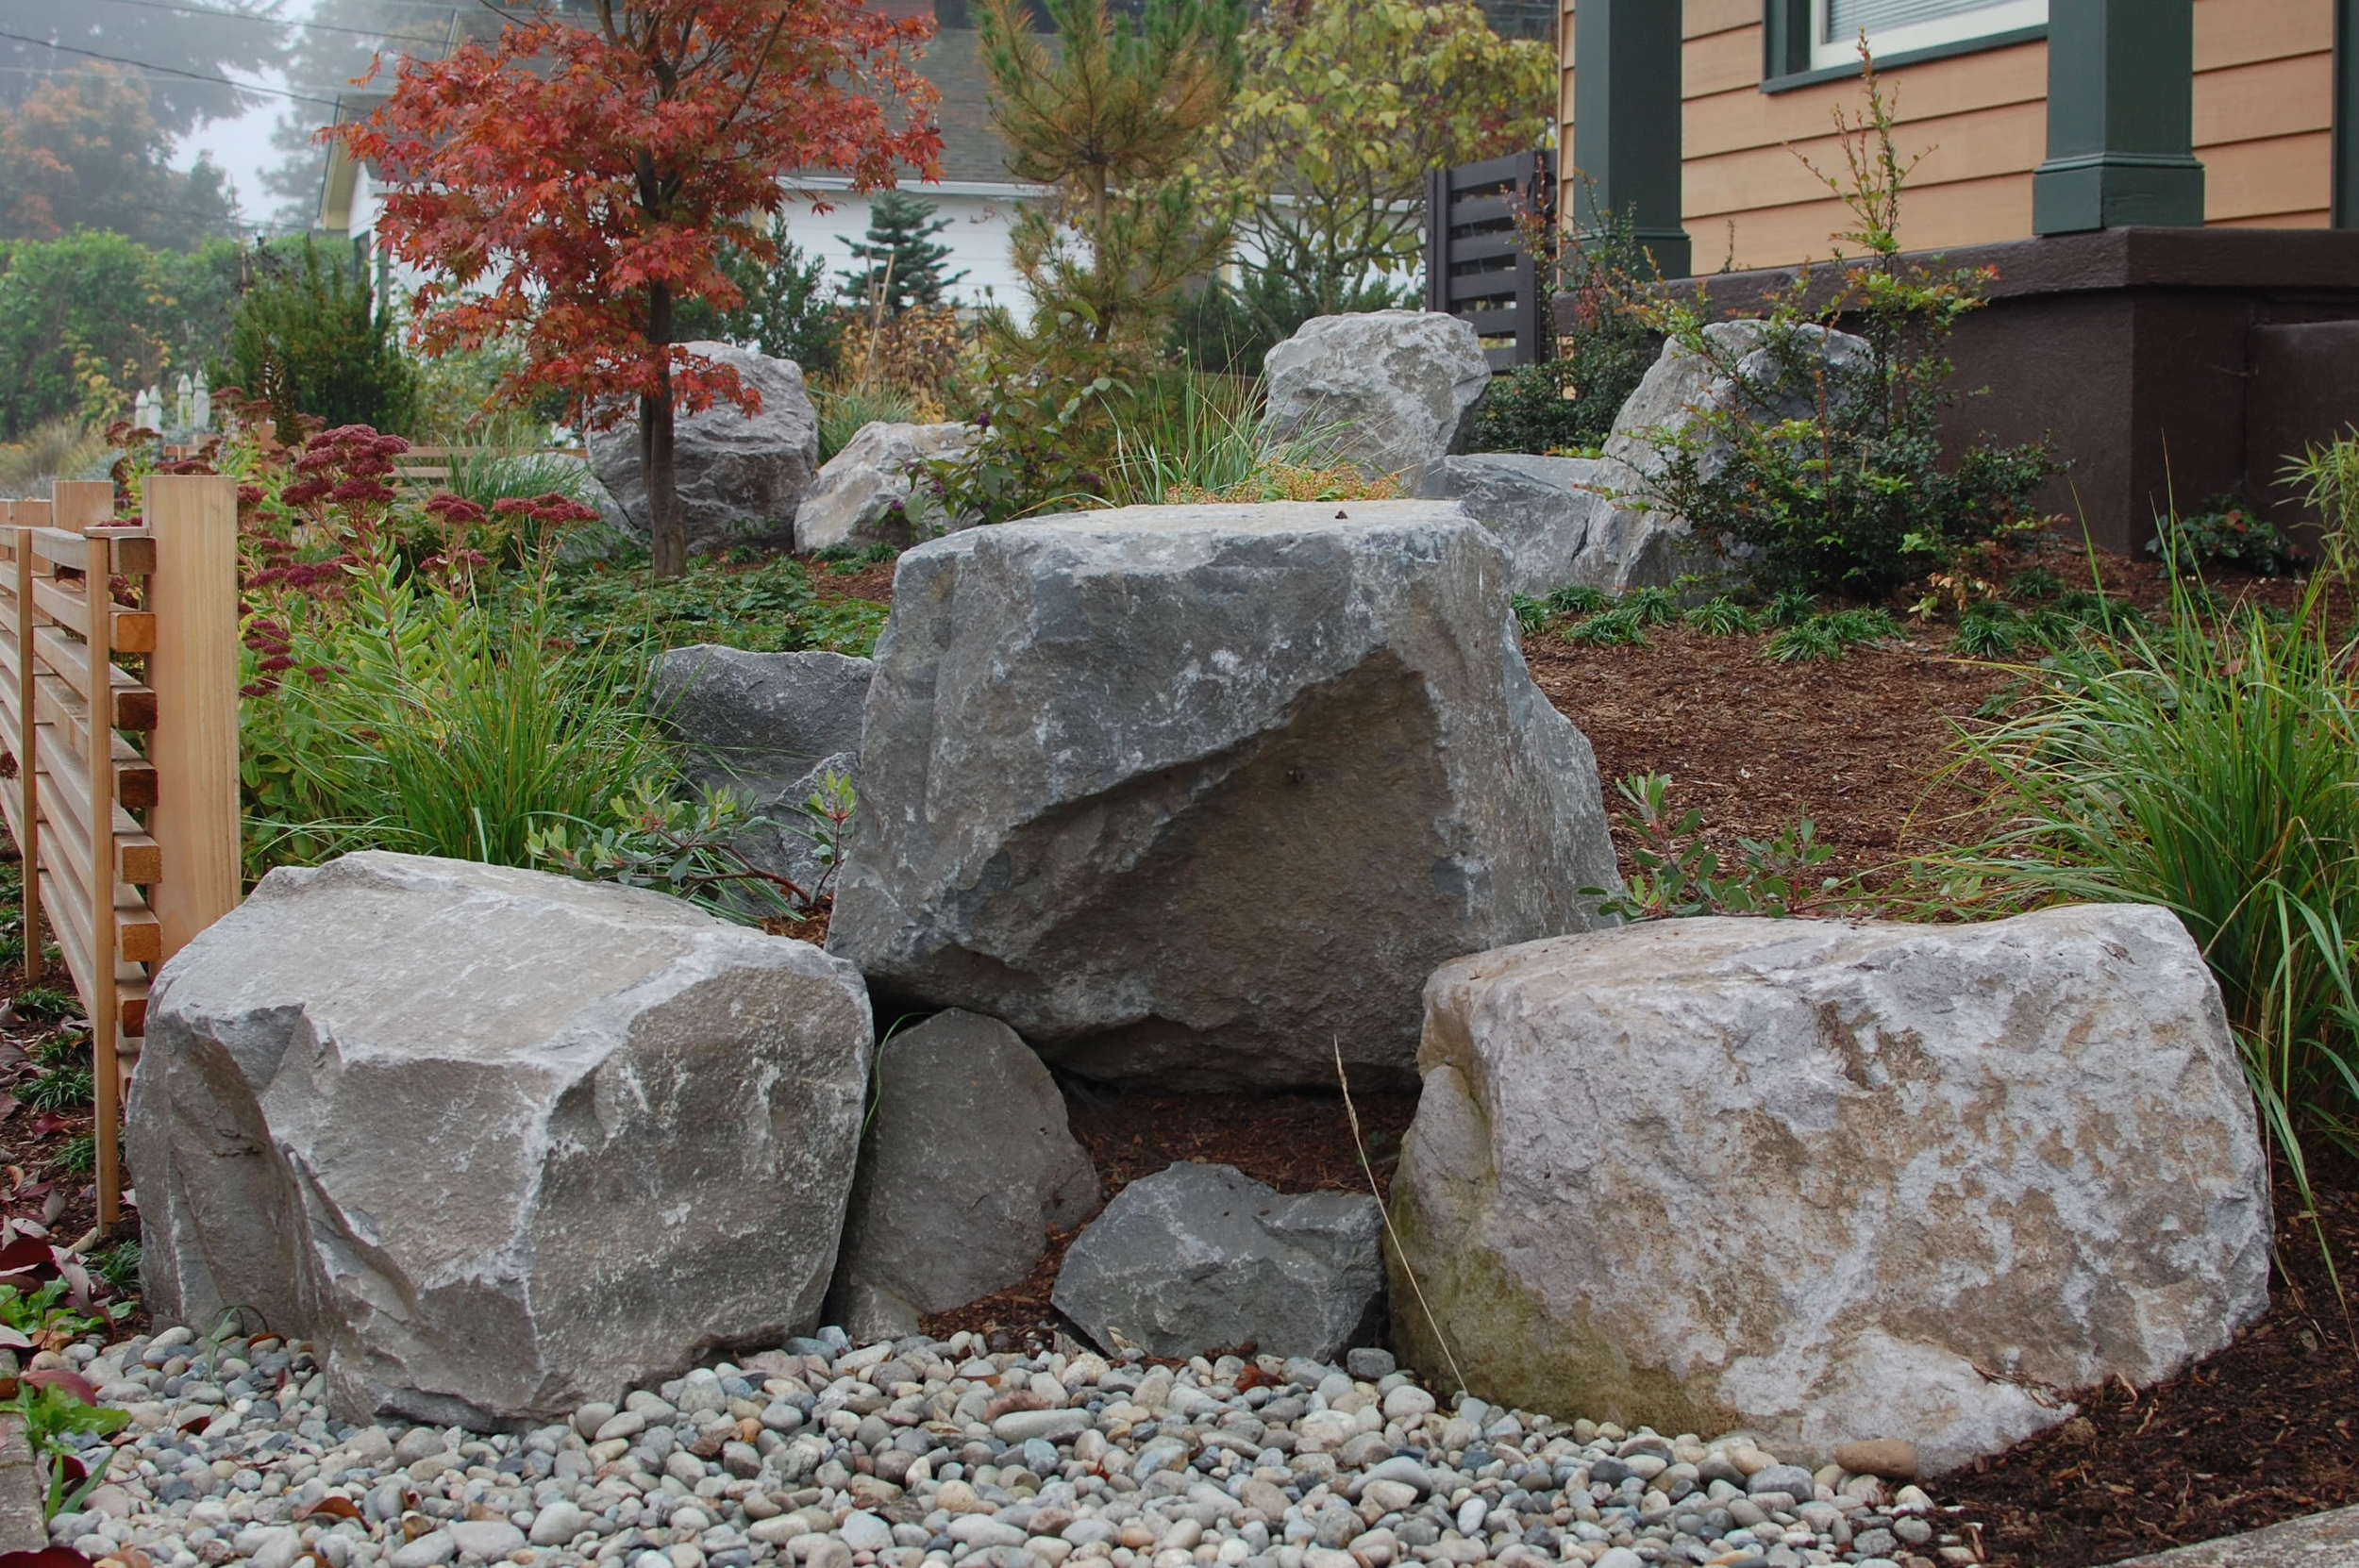 Boulder grouping by the main entrance, with a pea gravel pond.